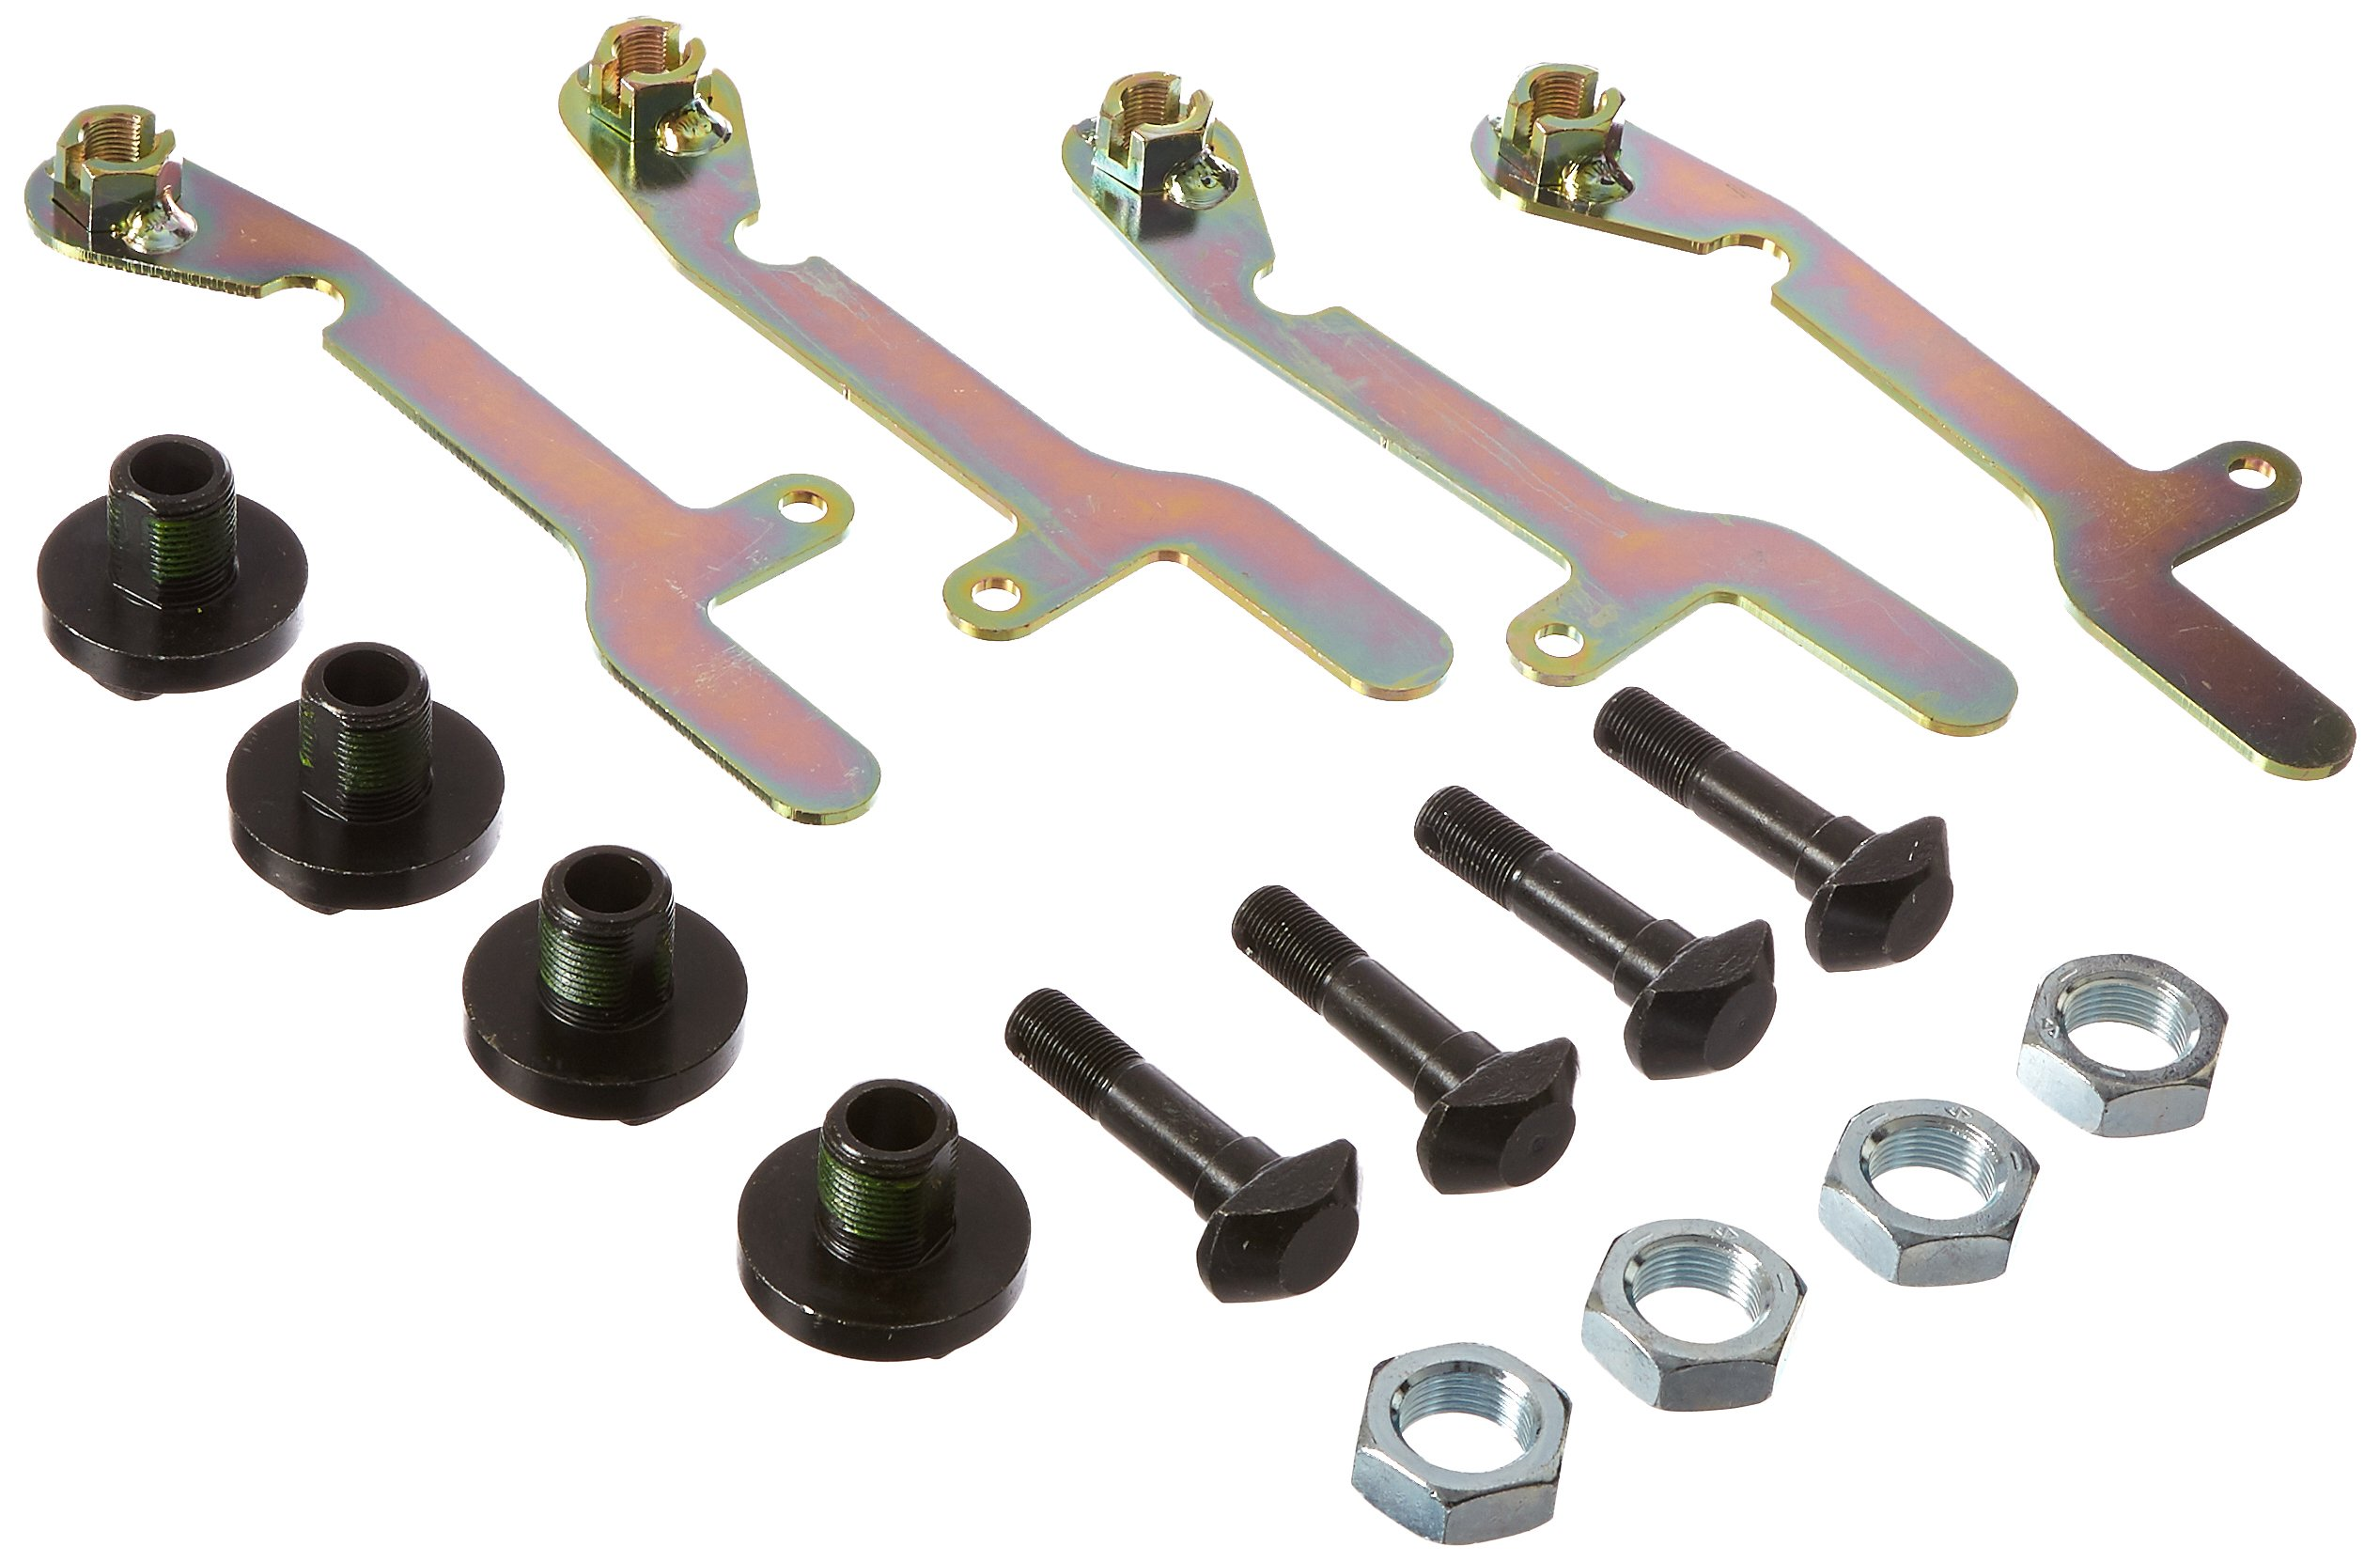 Reese 58419 Signature Series Fifth Wheel Adapter Kit by Reese